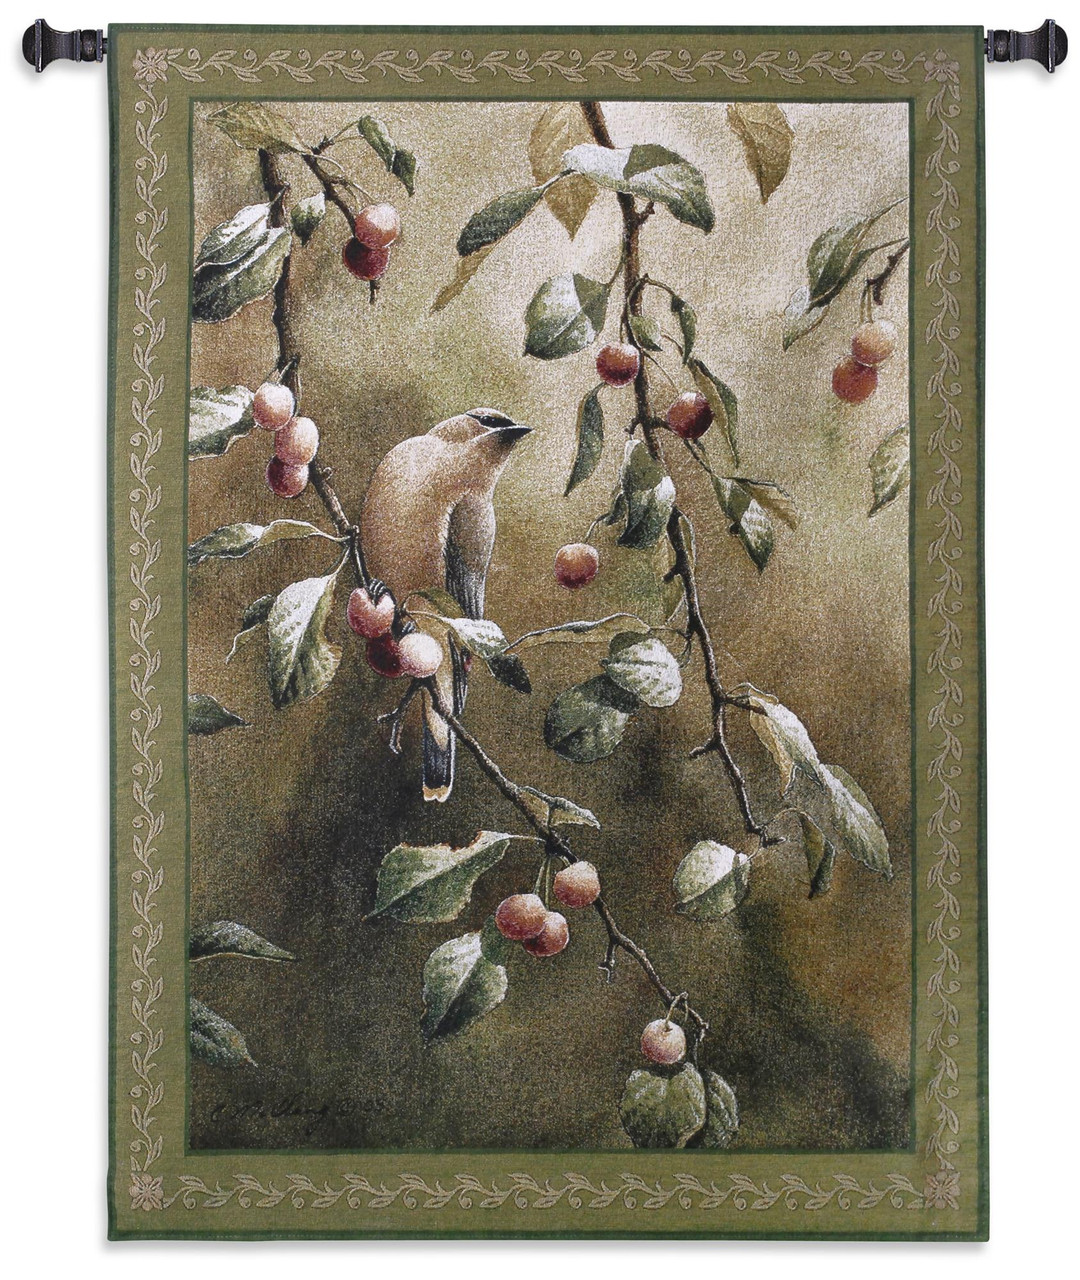 Cherry Chase By Catherine Mcclung Woven Tapestry Wall Art Hanging Romantic Bird Perched On Cherry Tree 100 Cotton Usa Size 53x38